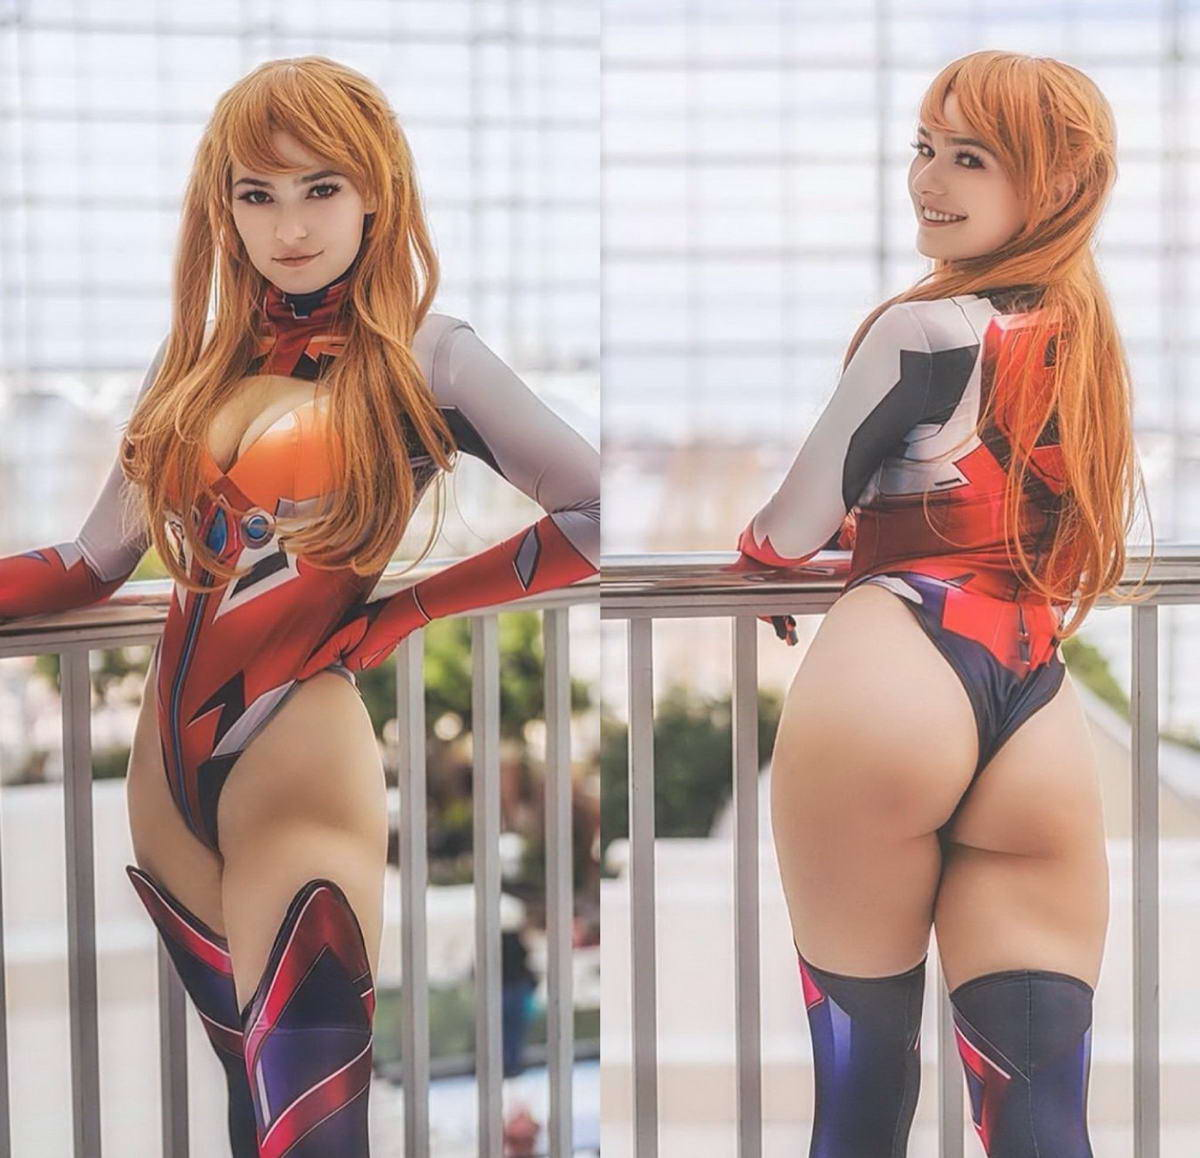 Hot Cosplay Girls Will Outshine Your Mind (37 Photos)